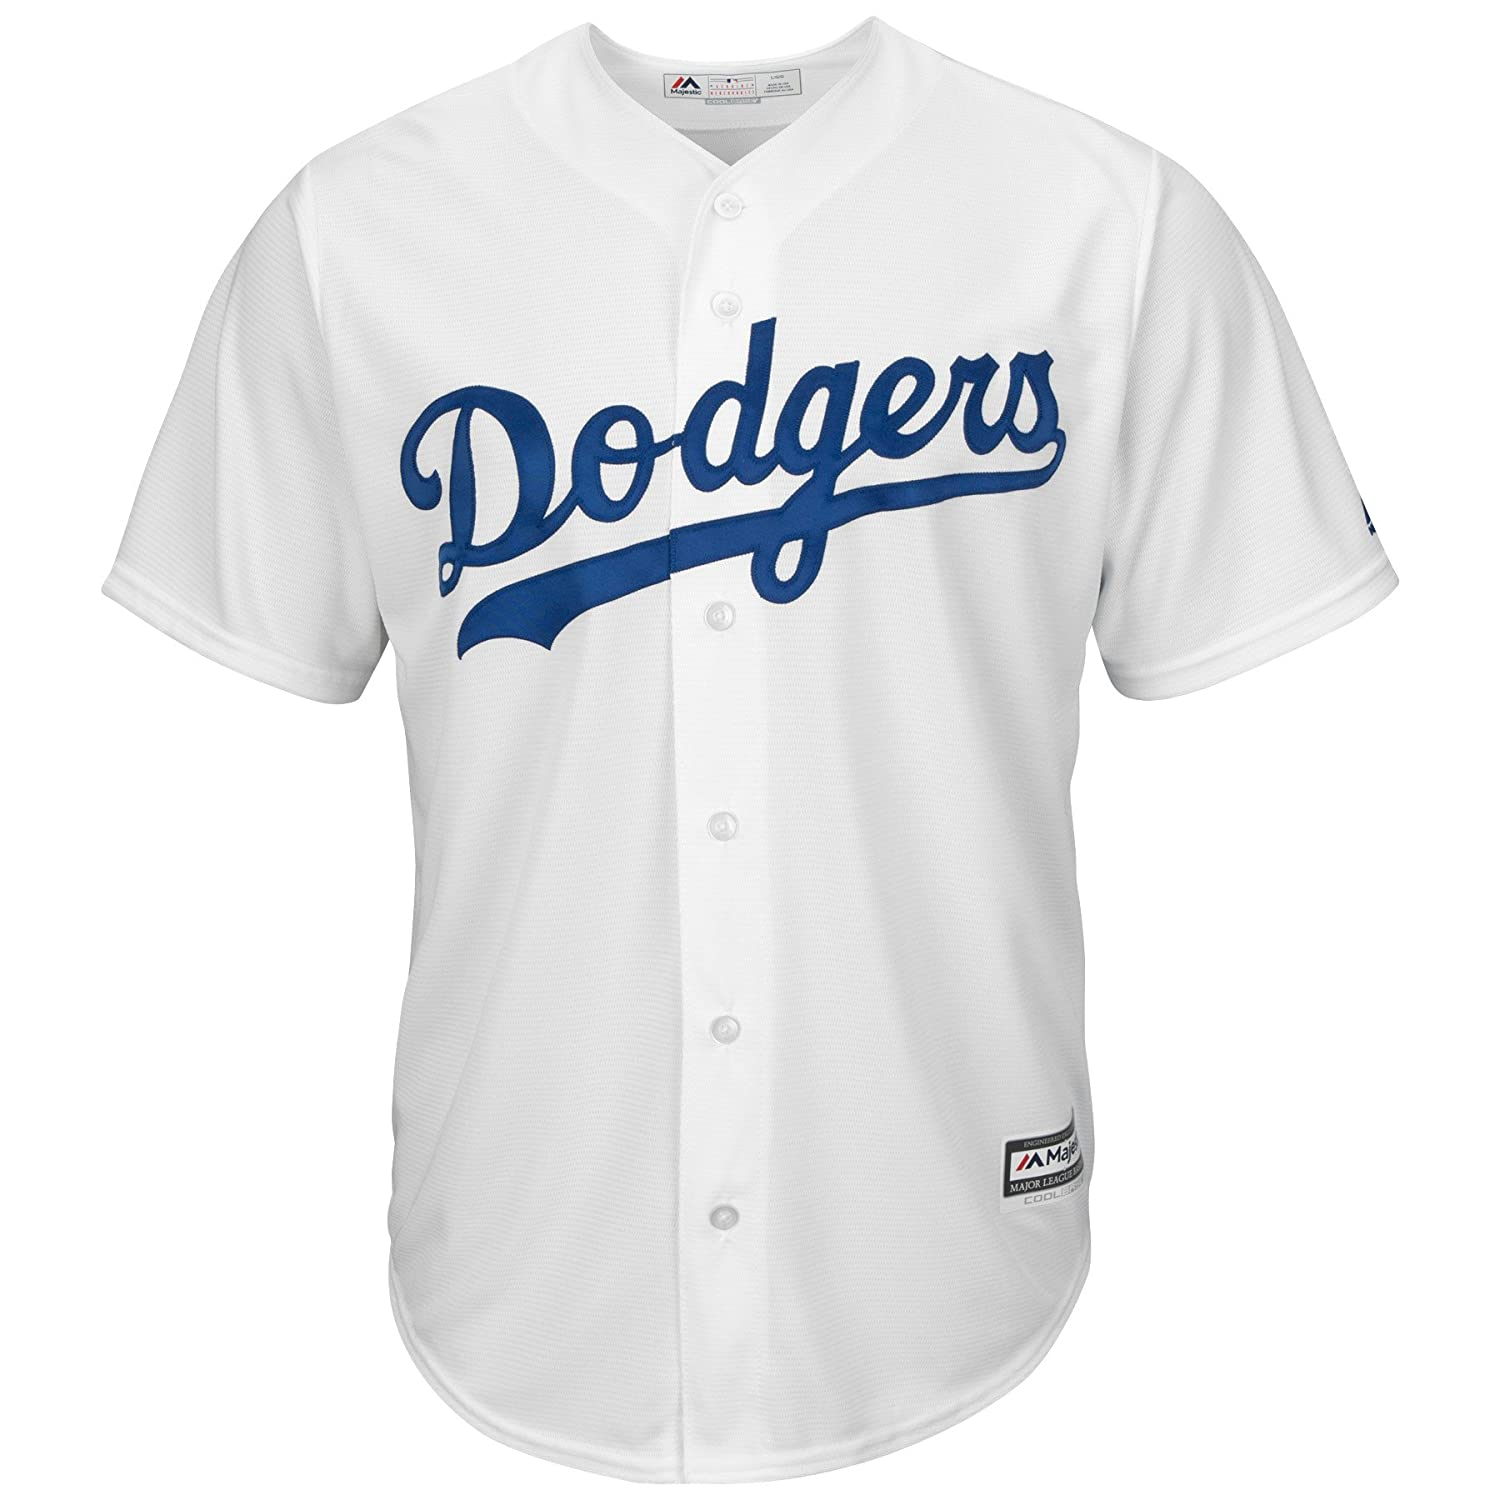 3fd0304c9 Amazon.com   Los Angeles Dodgers Clayton Kershaw Youth Cool Base White  Replica Jersey Large 14-16   Sports   Outdoors